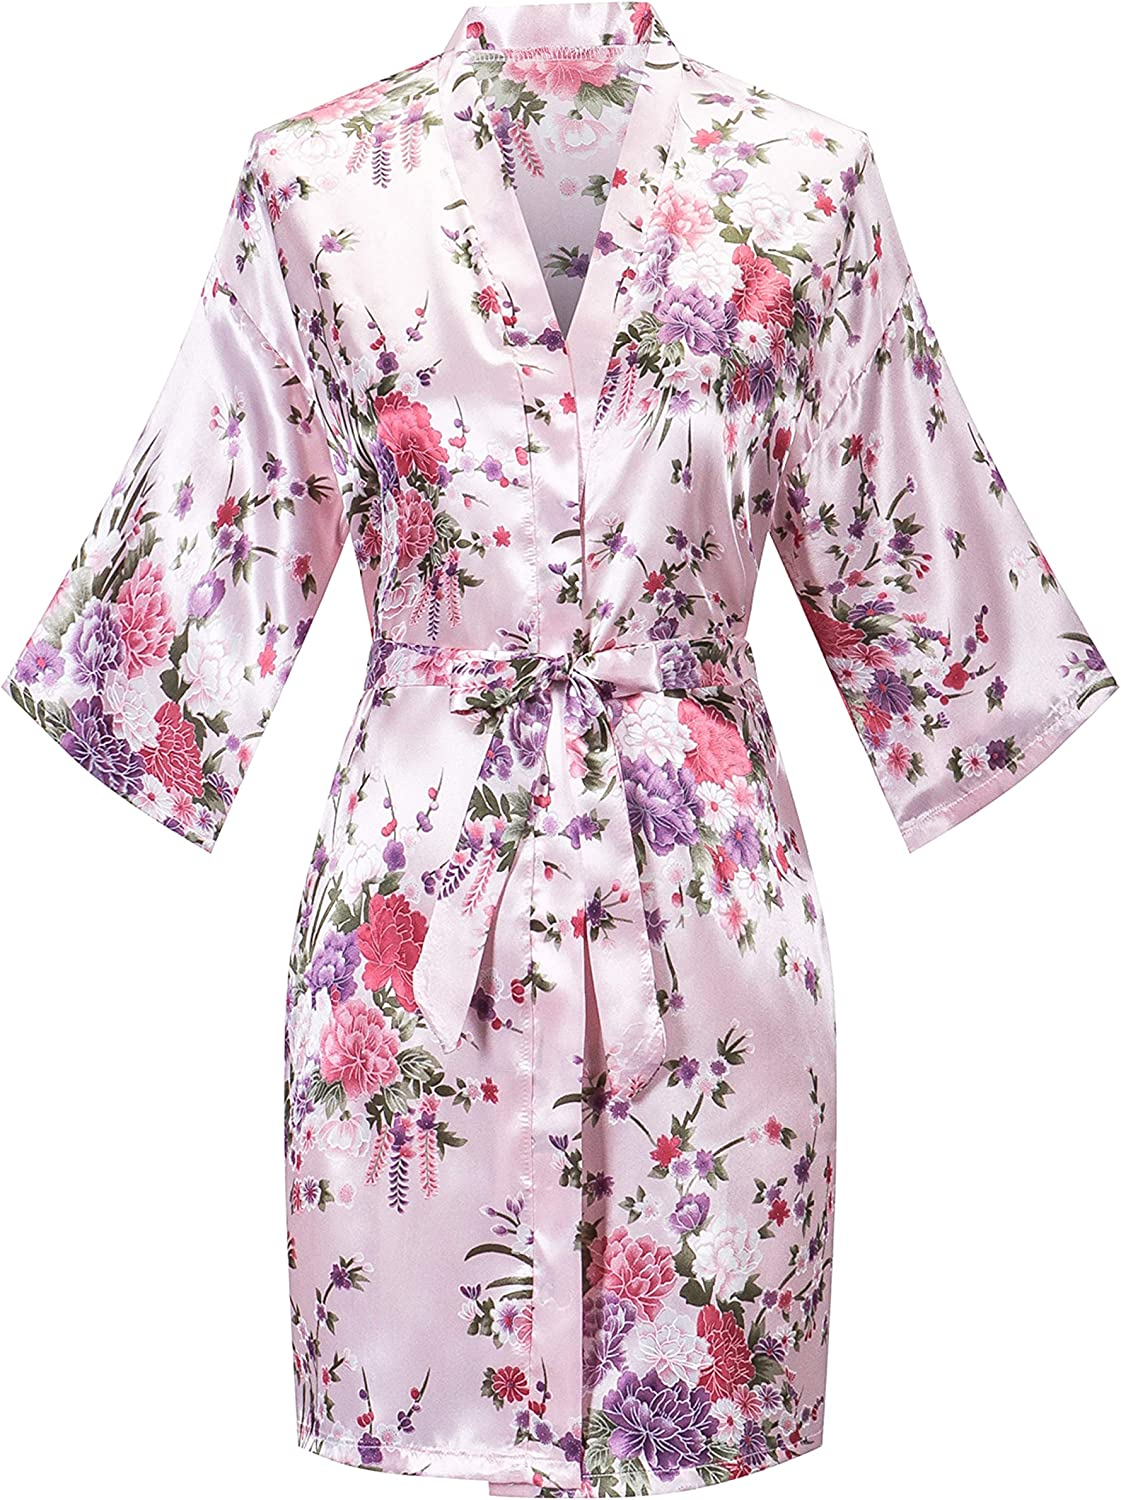 Super Special SALE held Women's Floral satin Robe Bridal Short Bridesmaids Max 66% OFF Gown Dressing